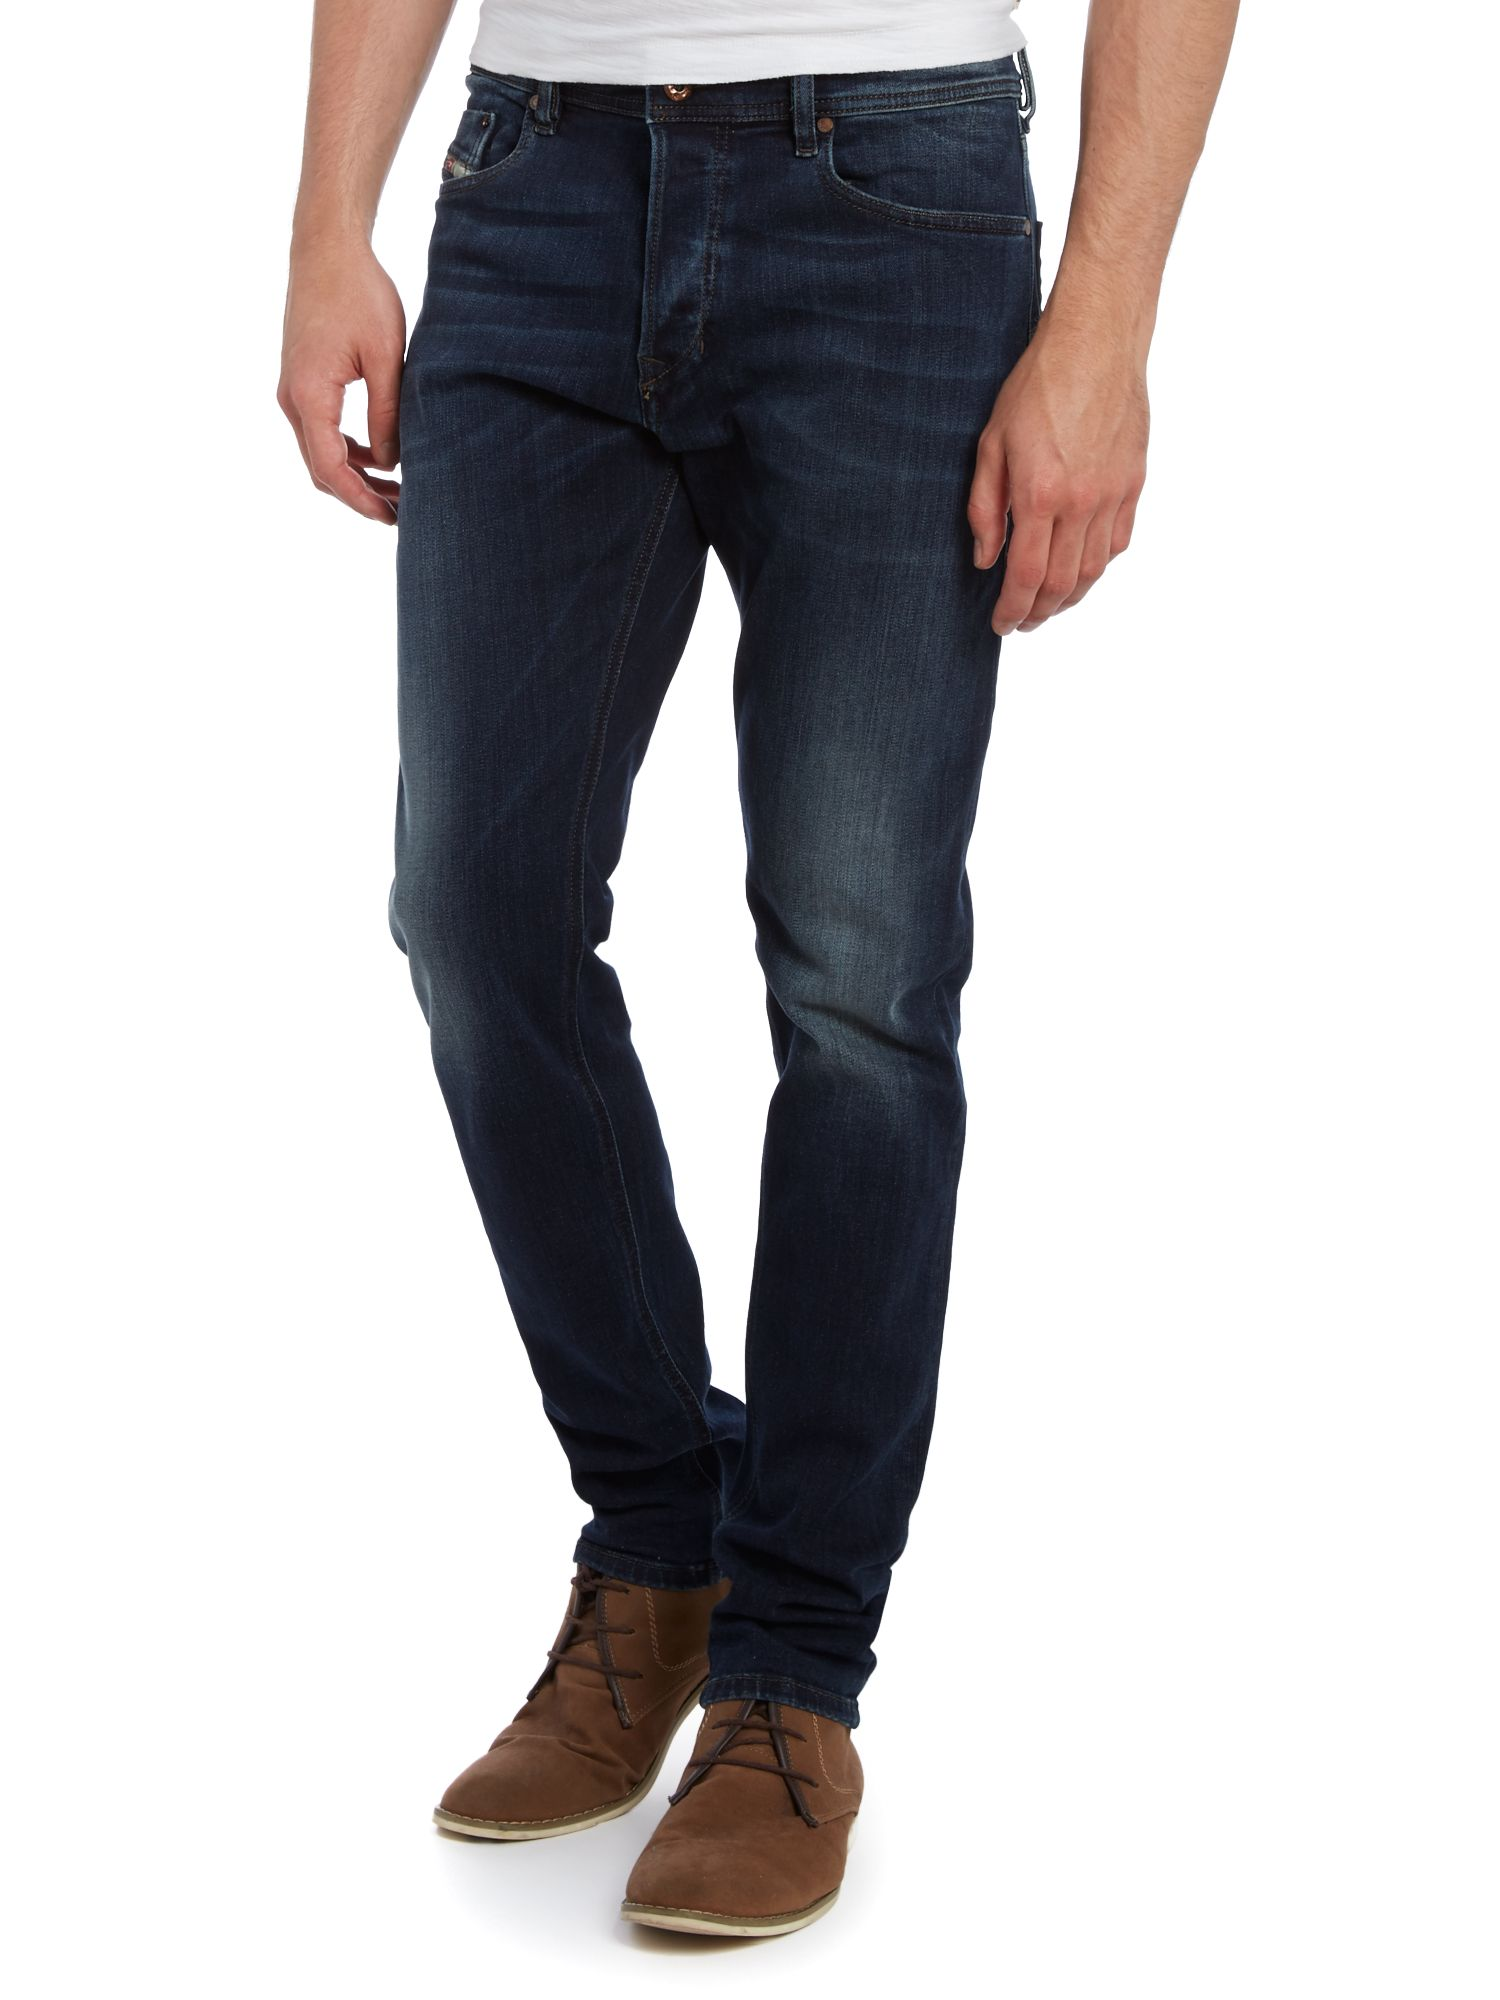 Tepphar 814W carrot dark wash jeans